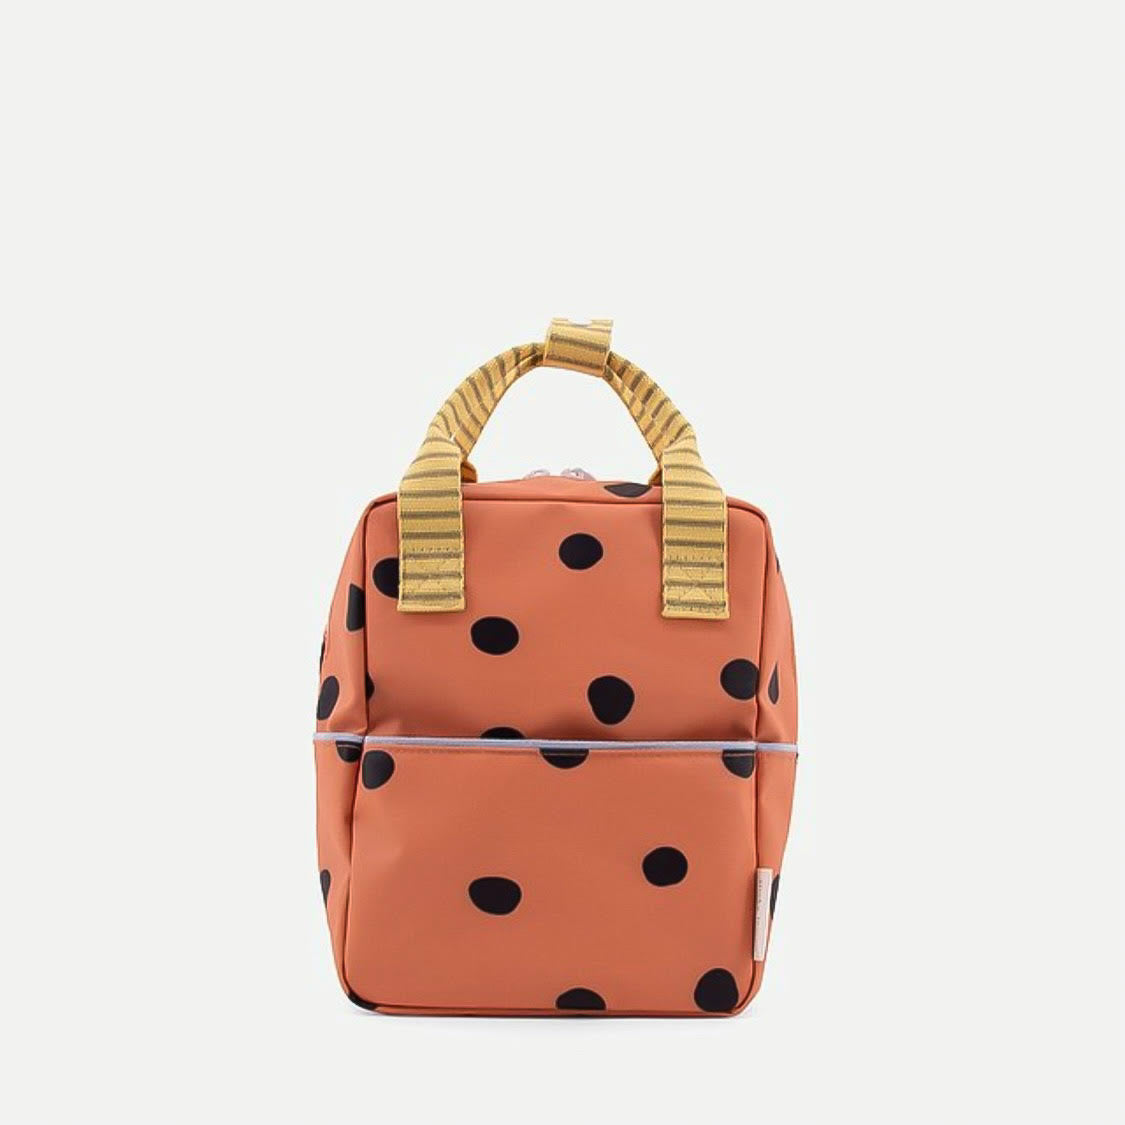 Sticky Lemon Small Backpack Freckles - Faded Orange (Special Edition)